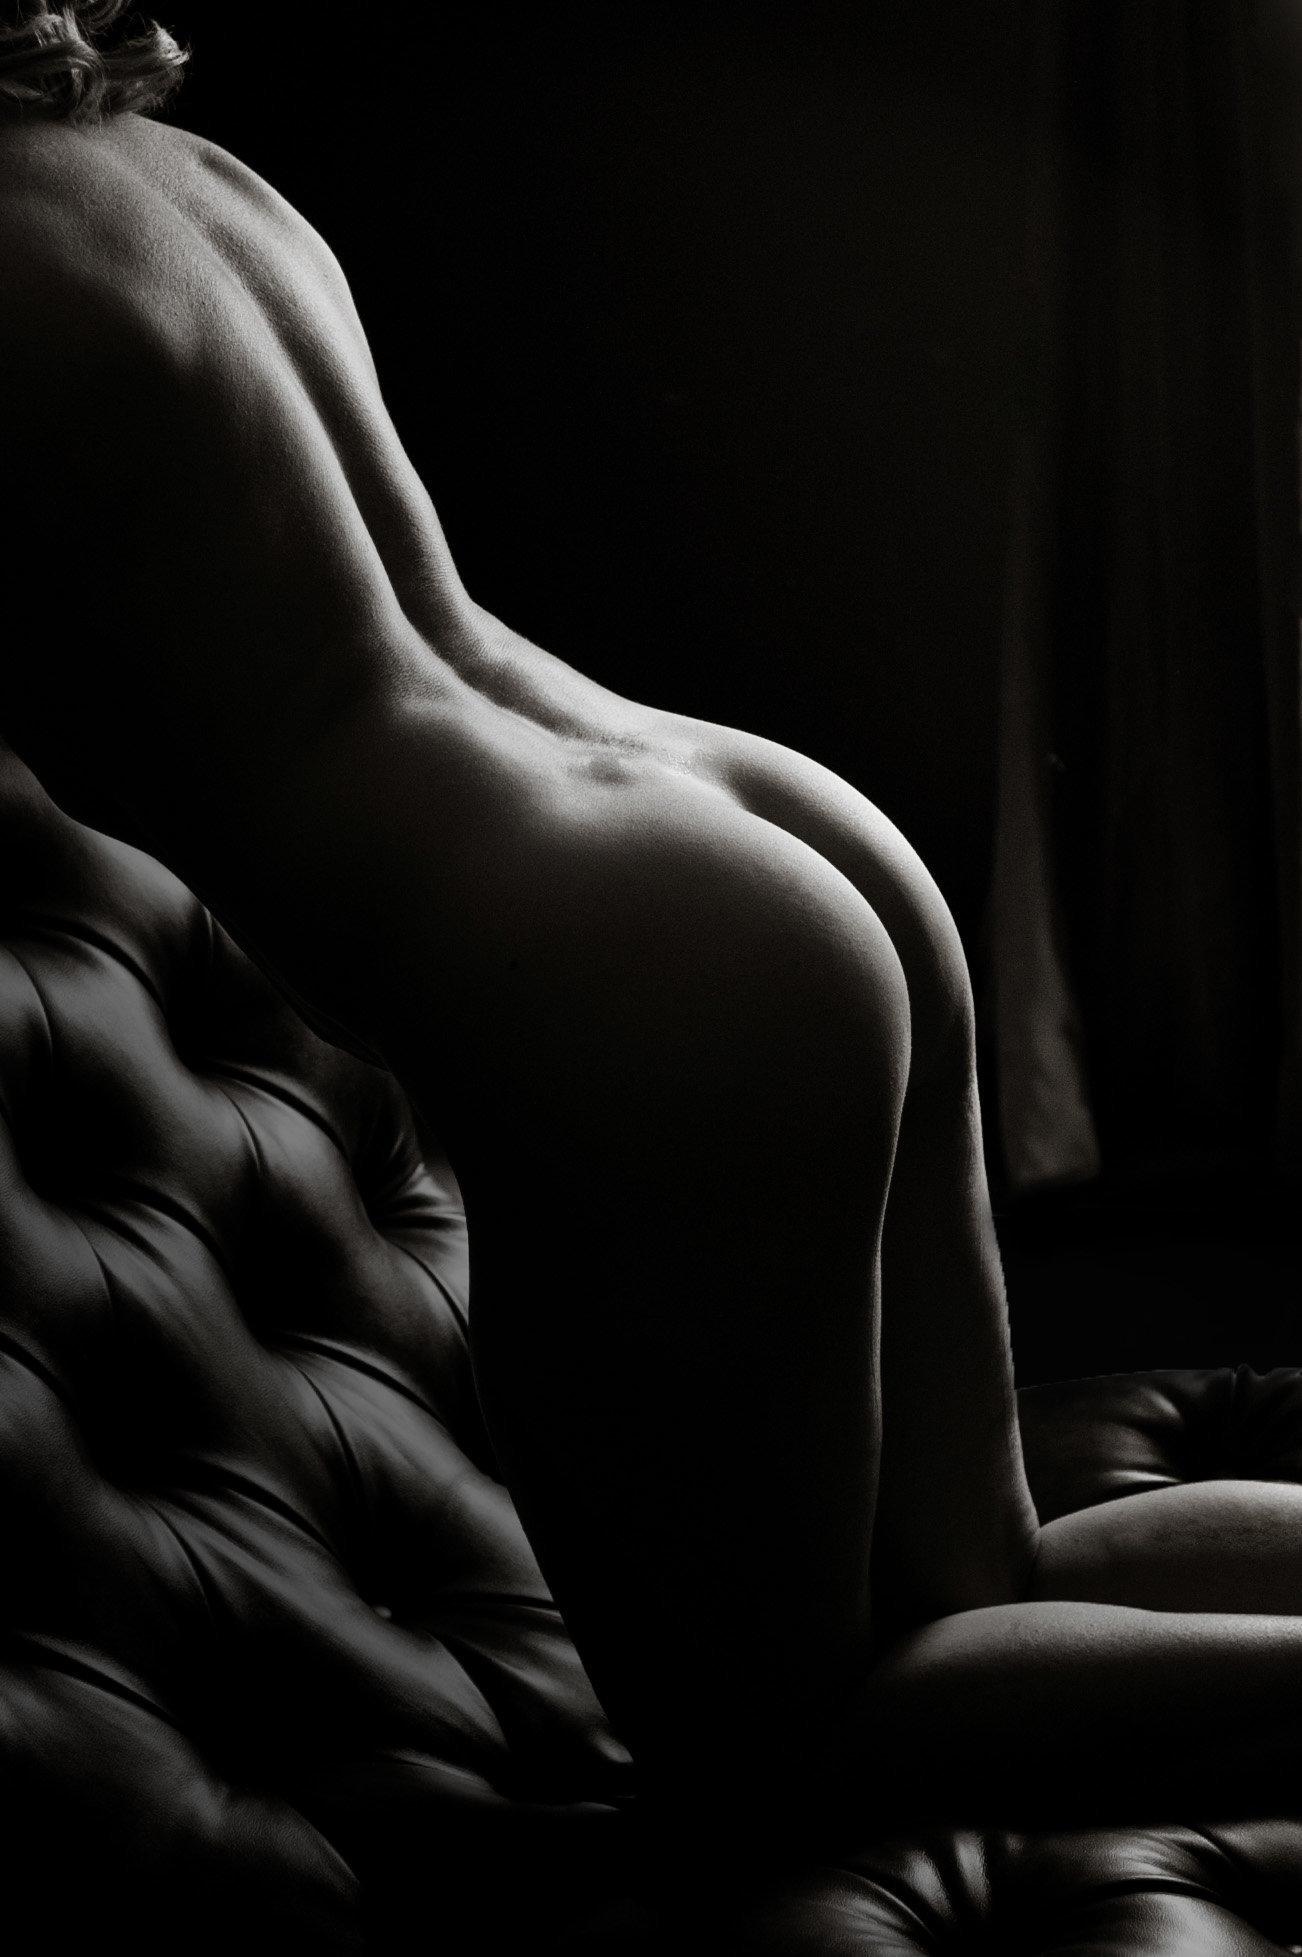 minneapolis-boudoir-photography-130